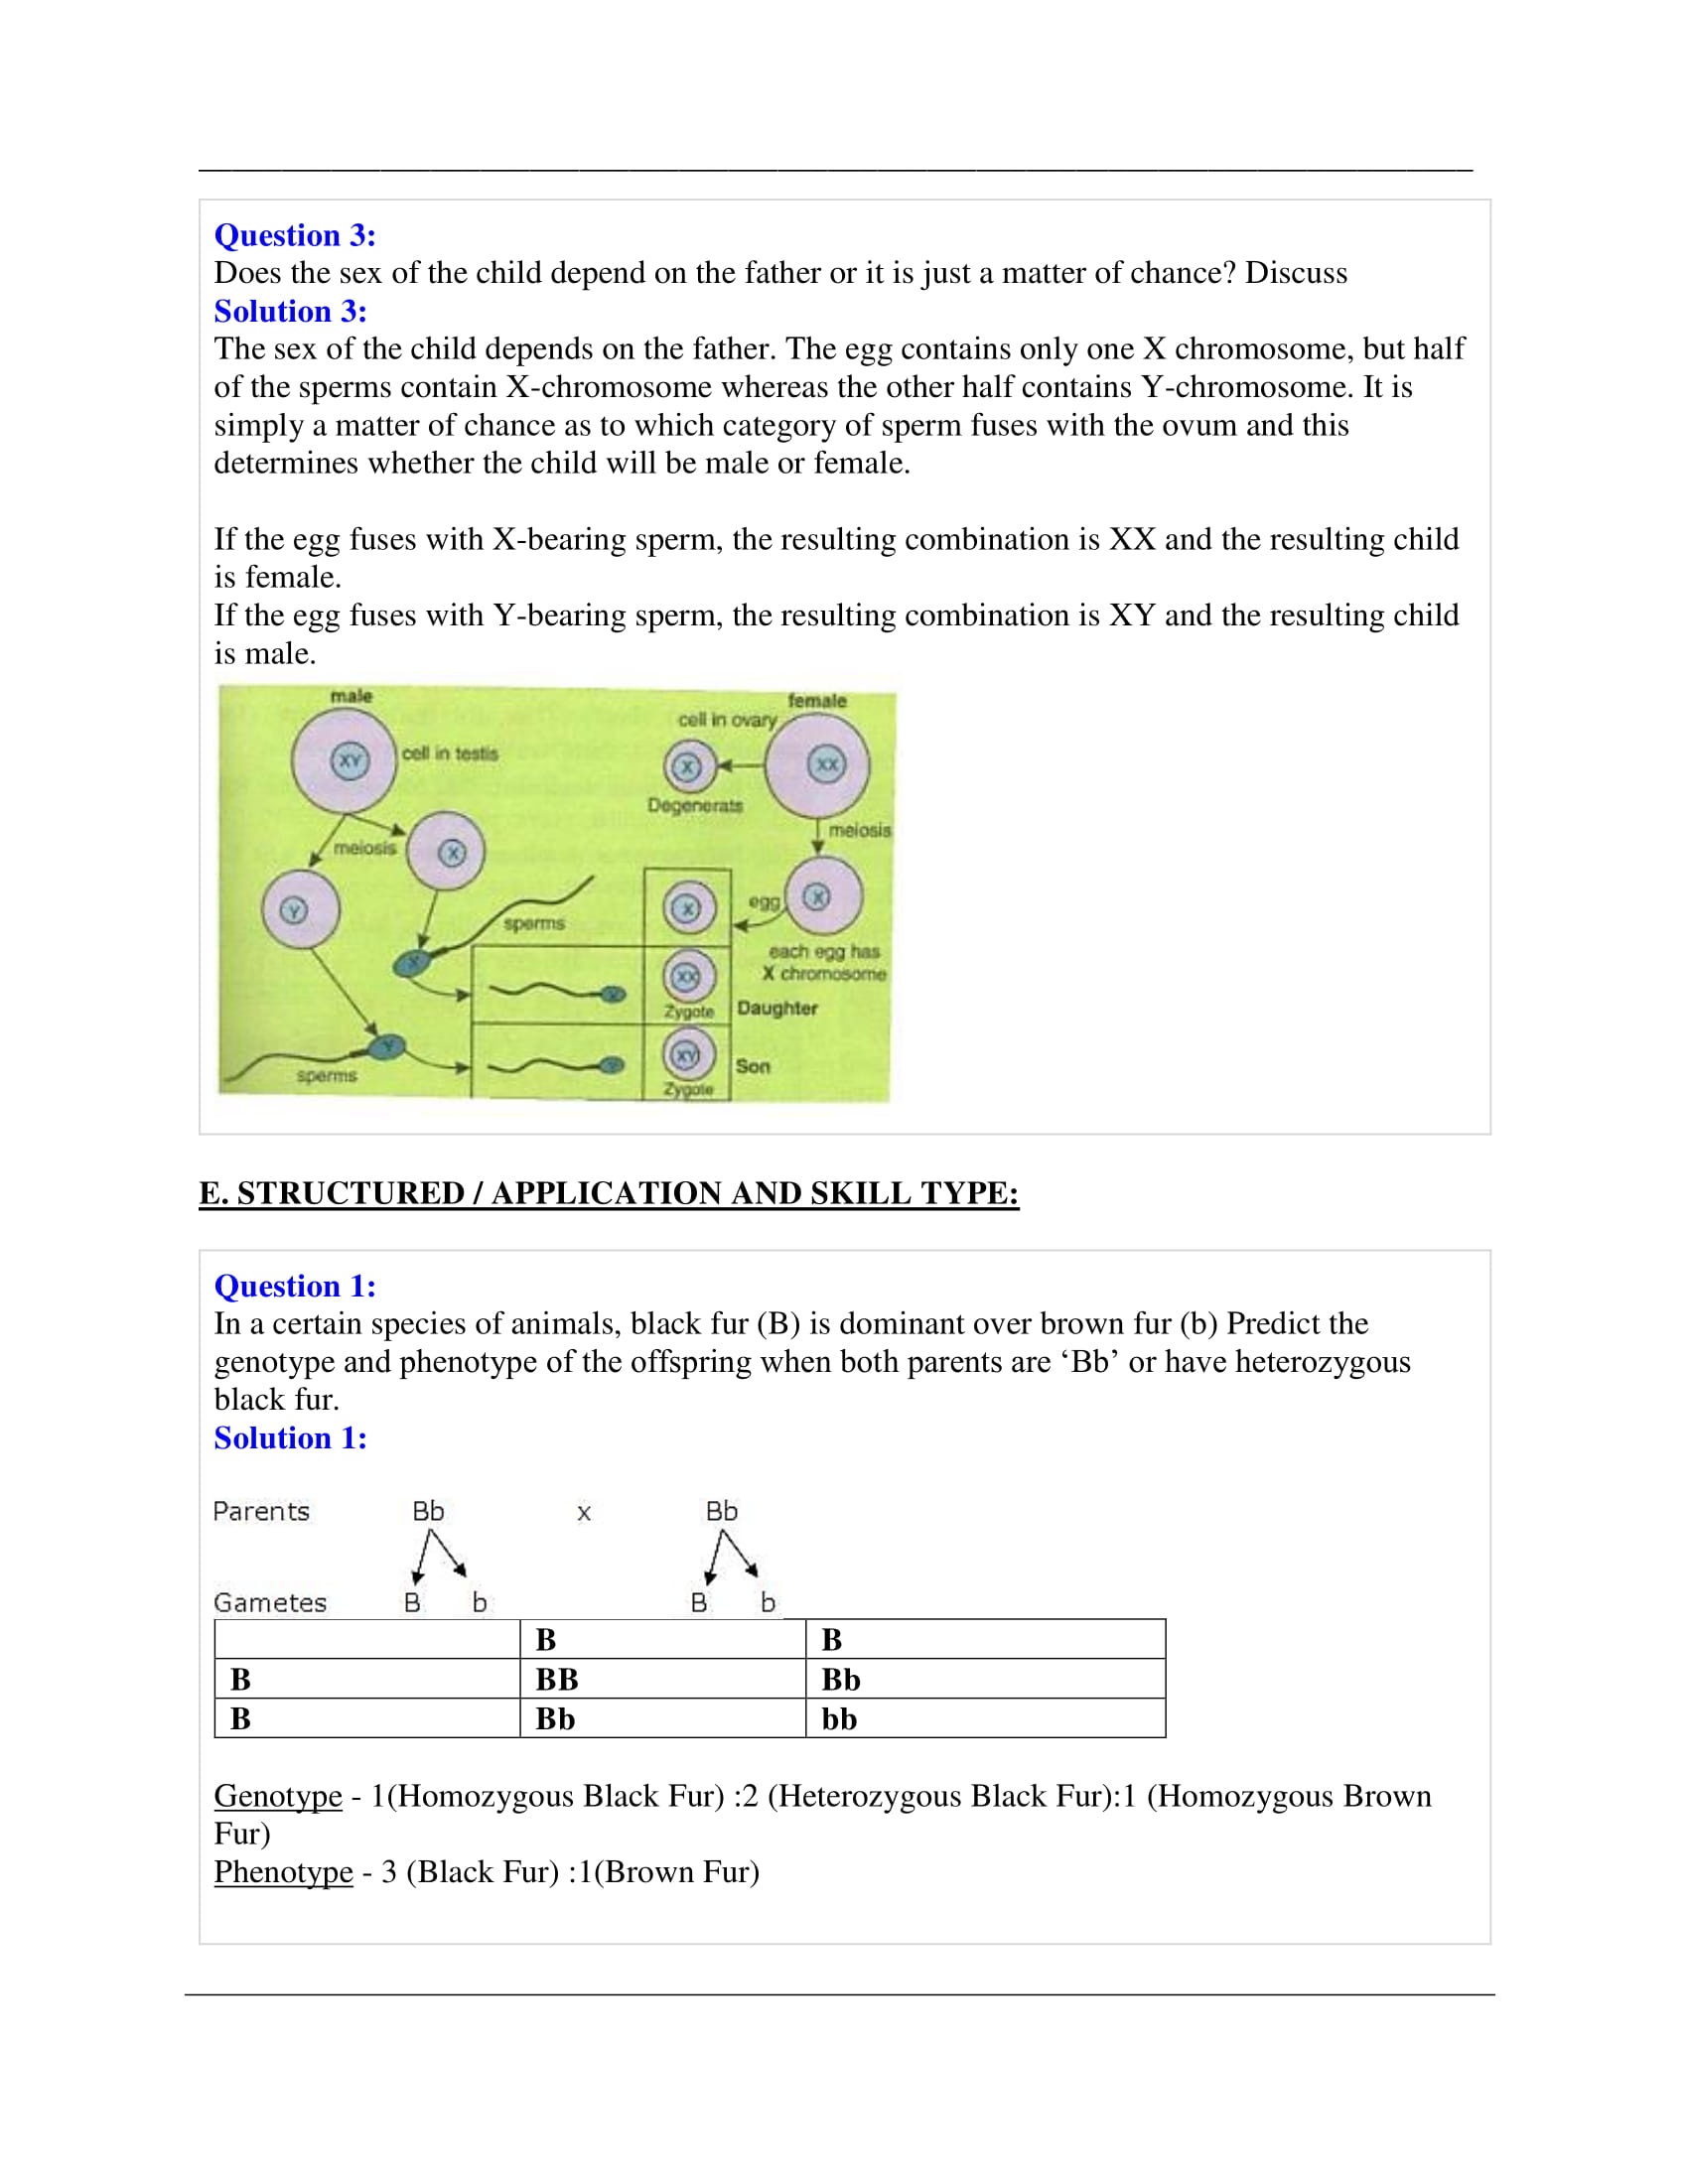 icse-selina-biology-solutions-class-10-chapter-2-genetics-some-basic-fundamentals-5